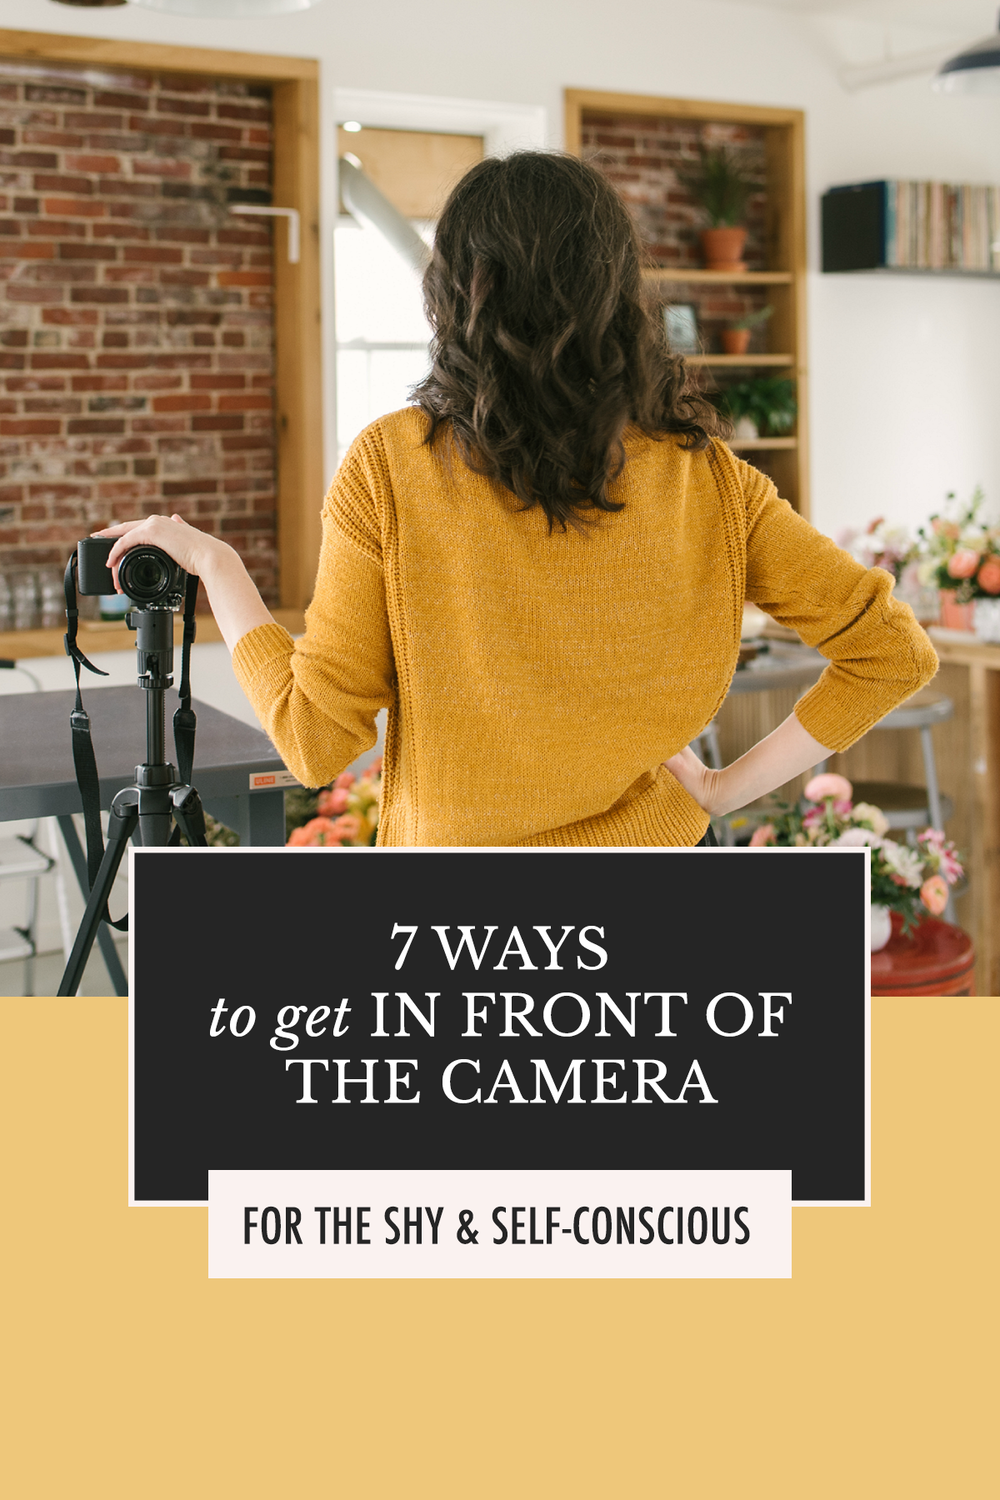 Photo poses and photo ideas for introverts | 7 Ways to Get Out in Front of the Camera for the Shy & Self-Conscious | Alexis the Greek blog